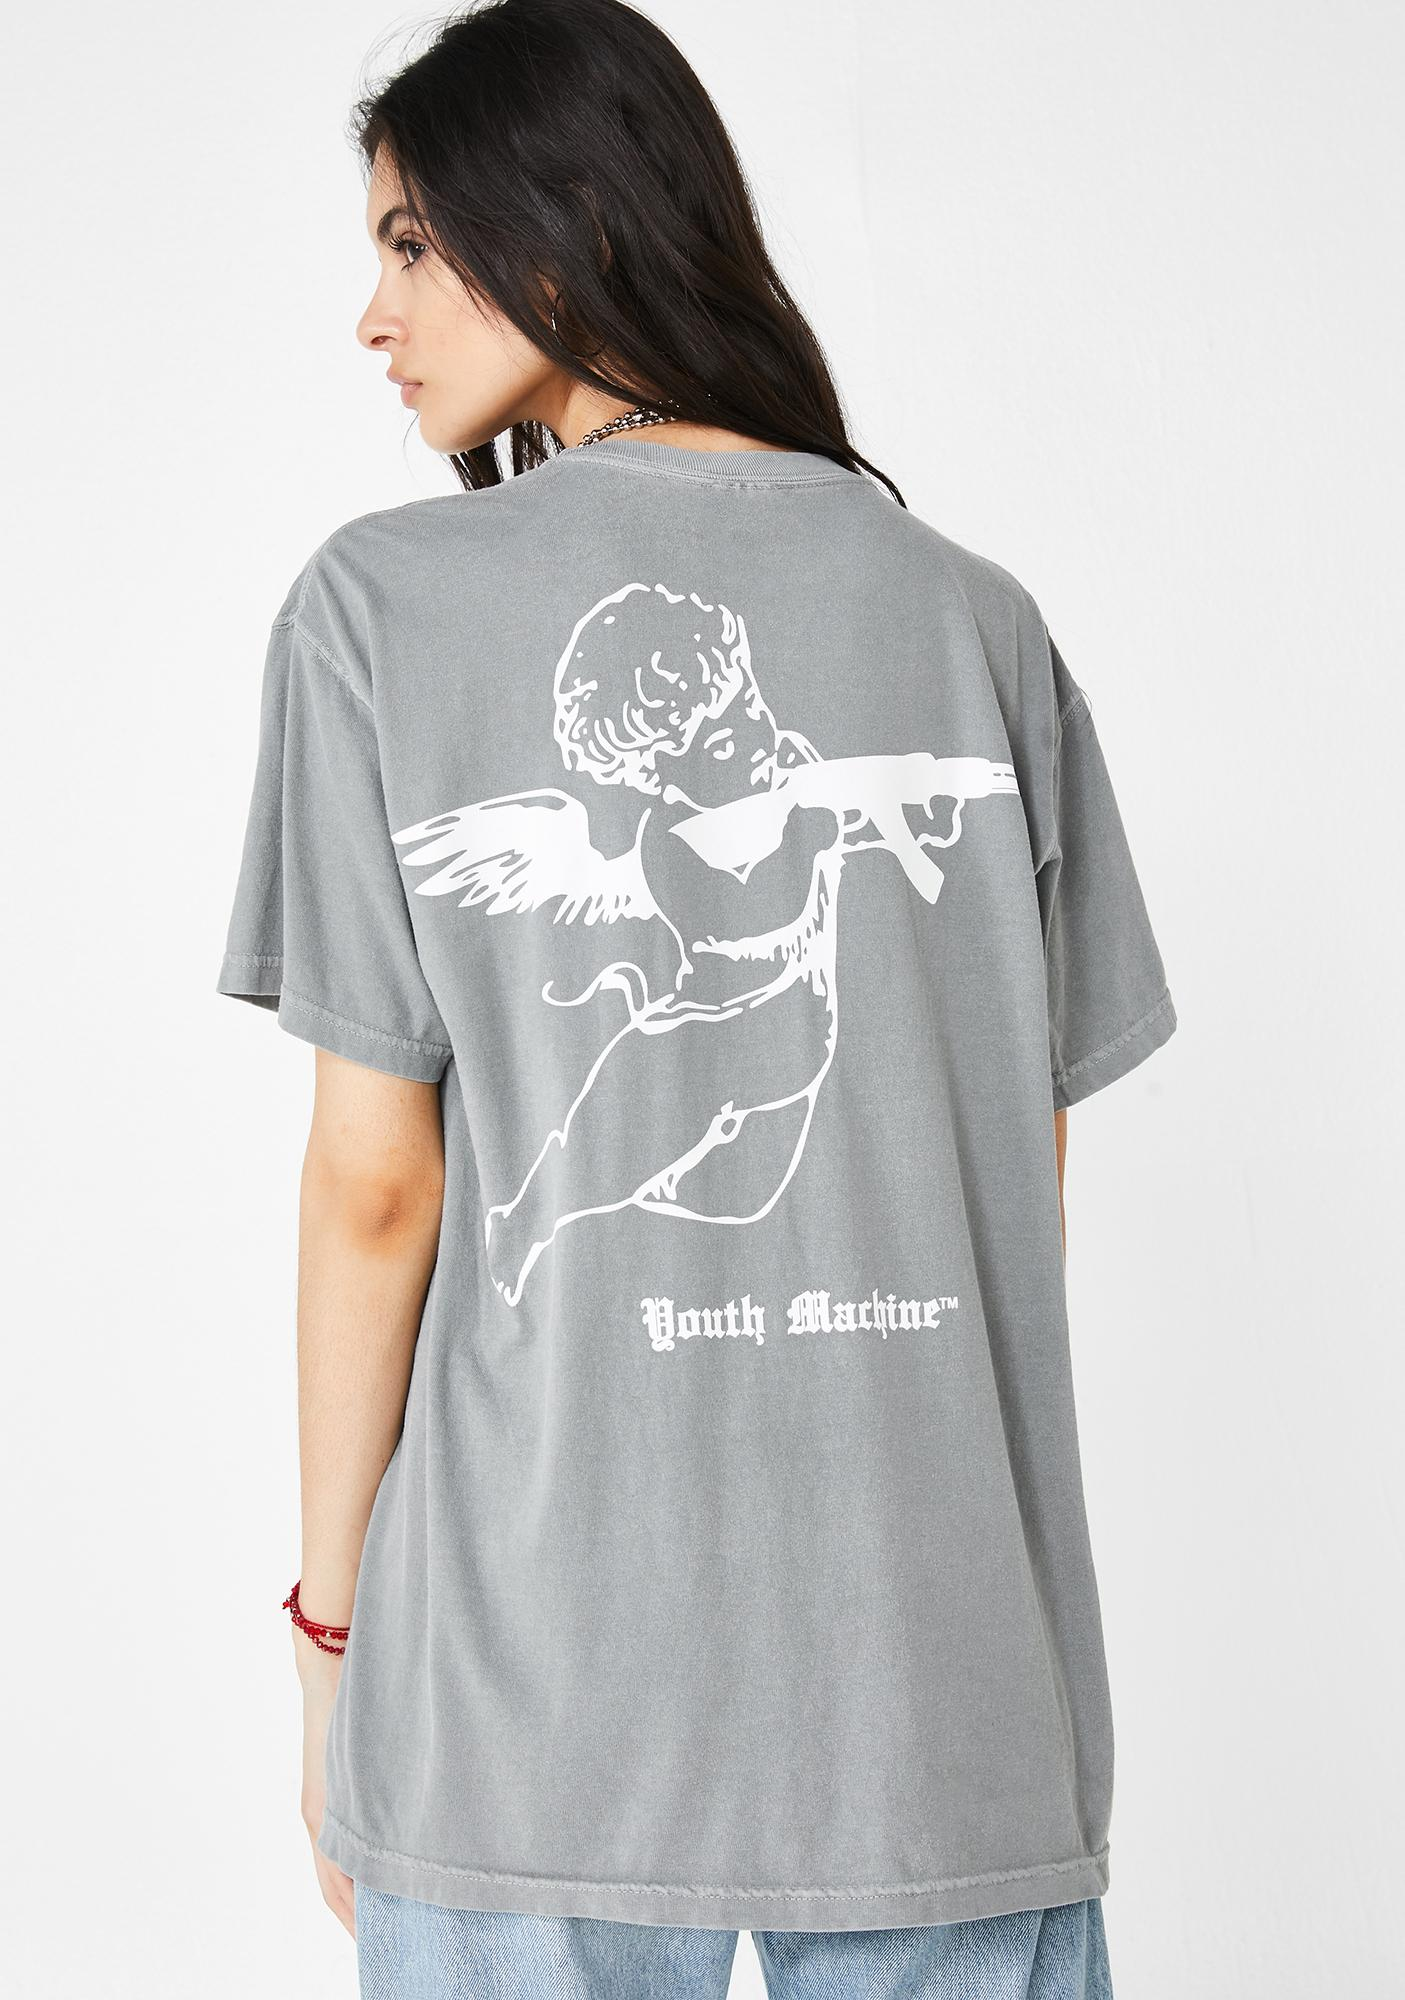 Youth Machine Arrows Graphic Tee